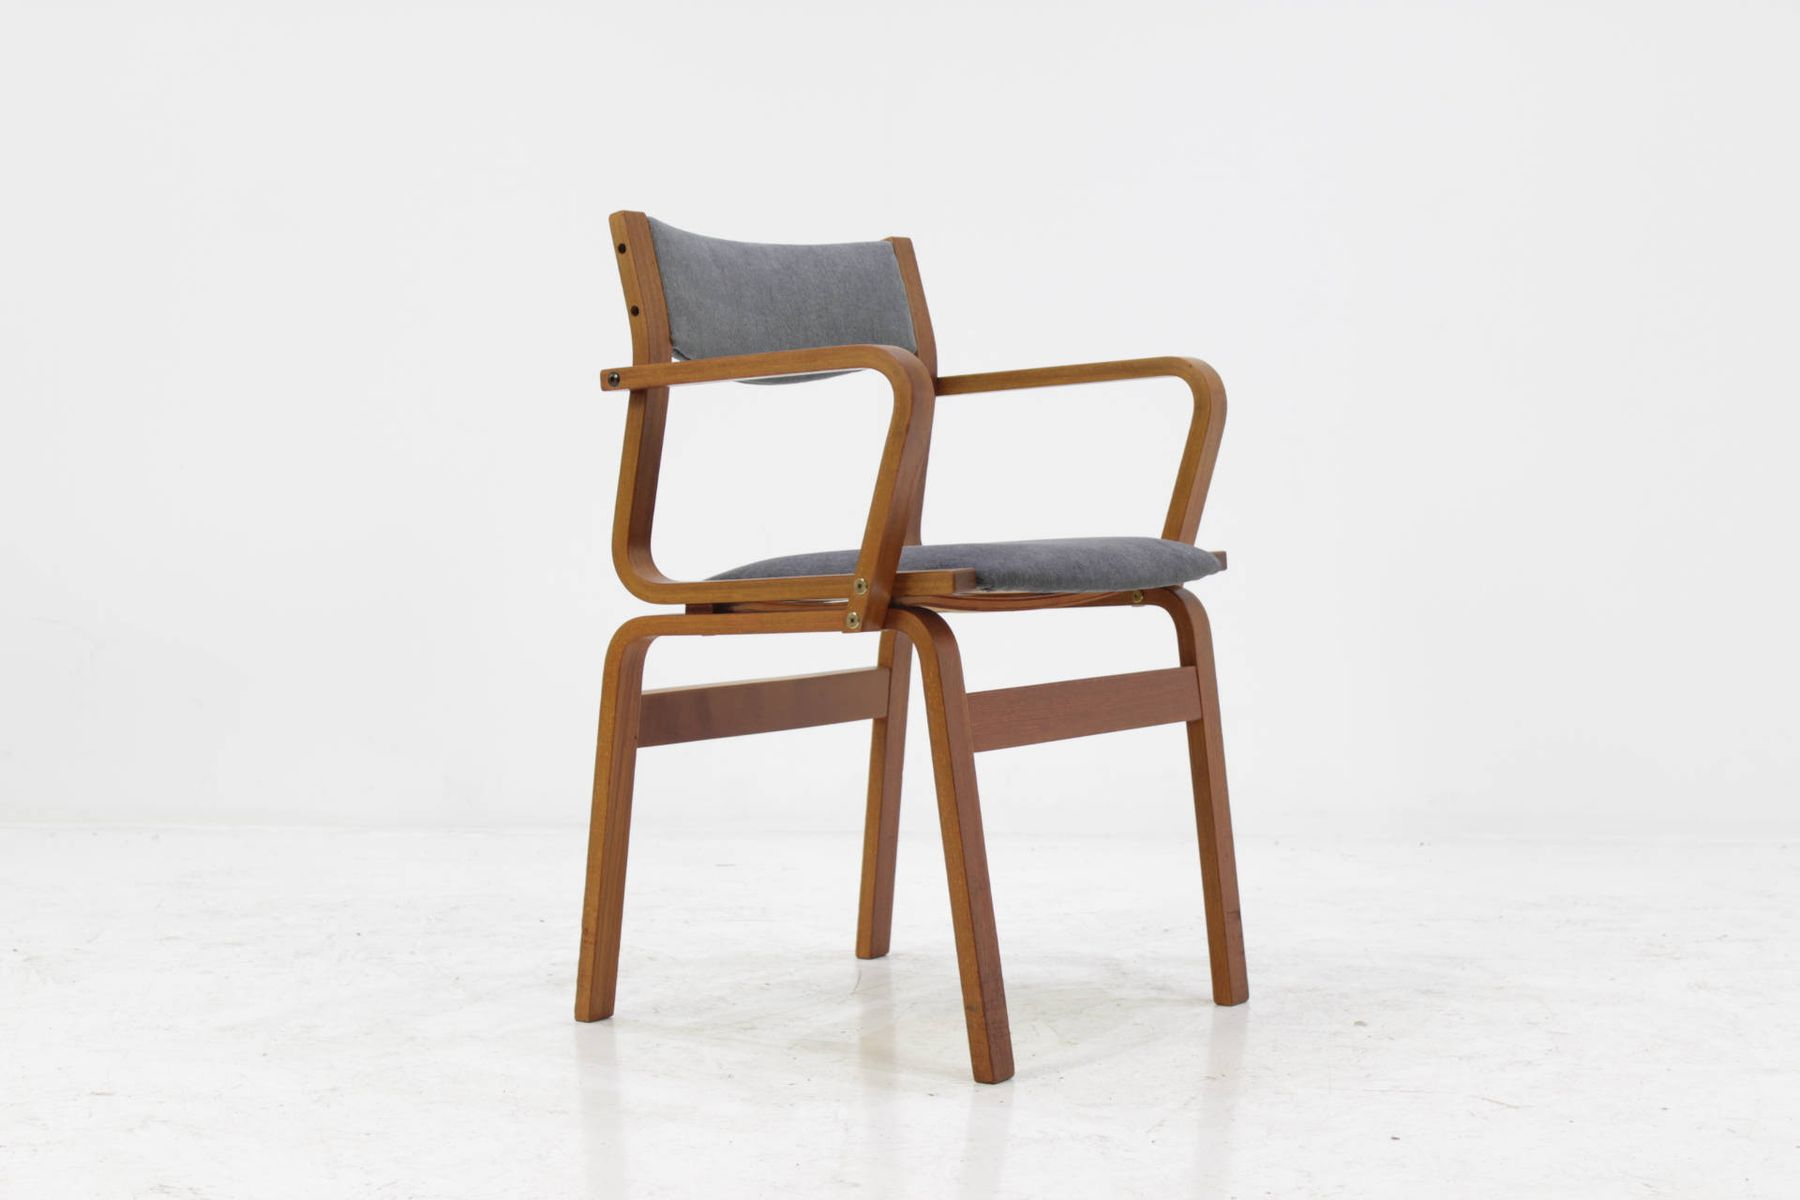 Vintage Danish Bentwood Chairs in Teak Set of 6 for sale at Pamono